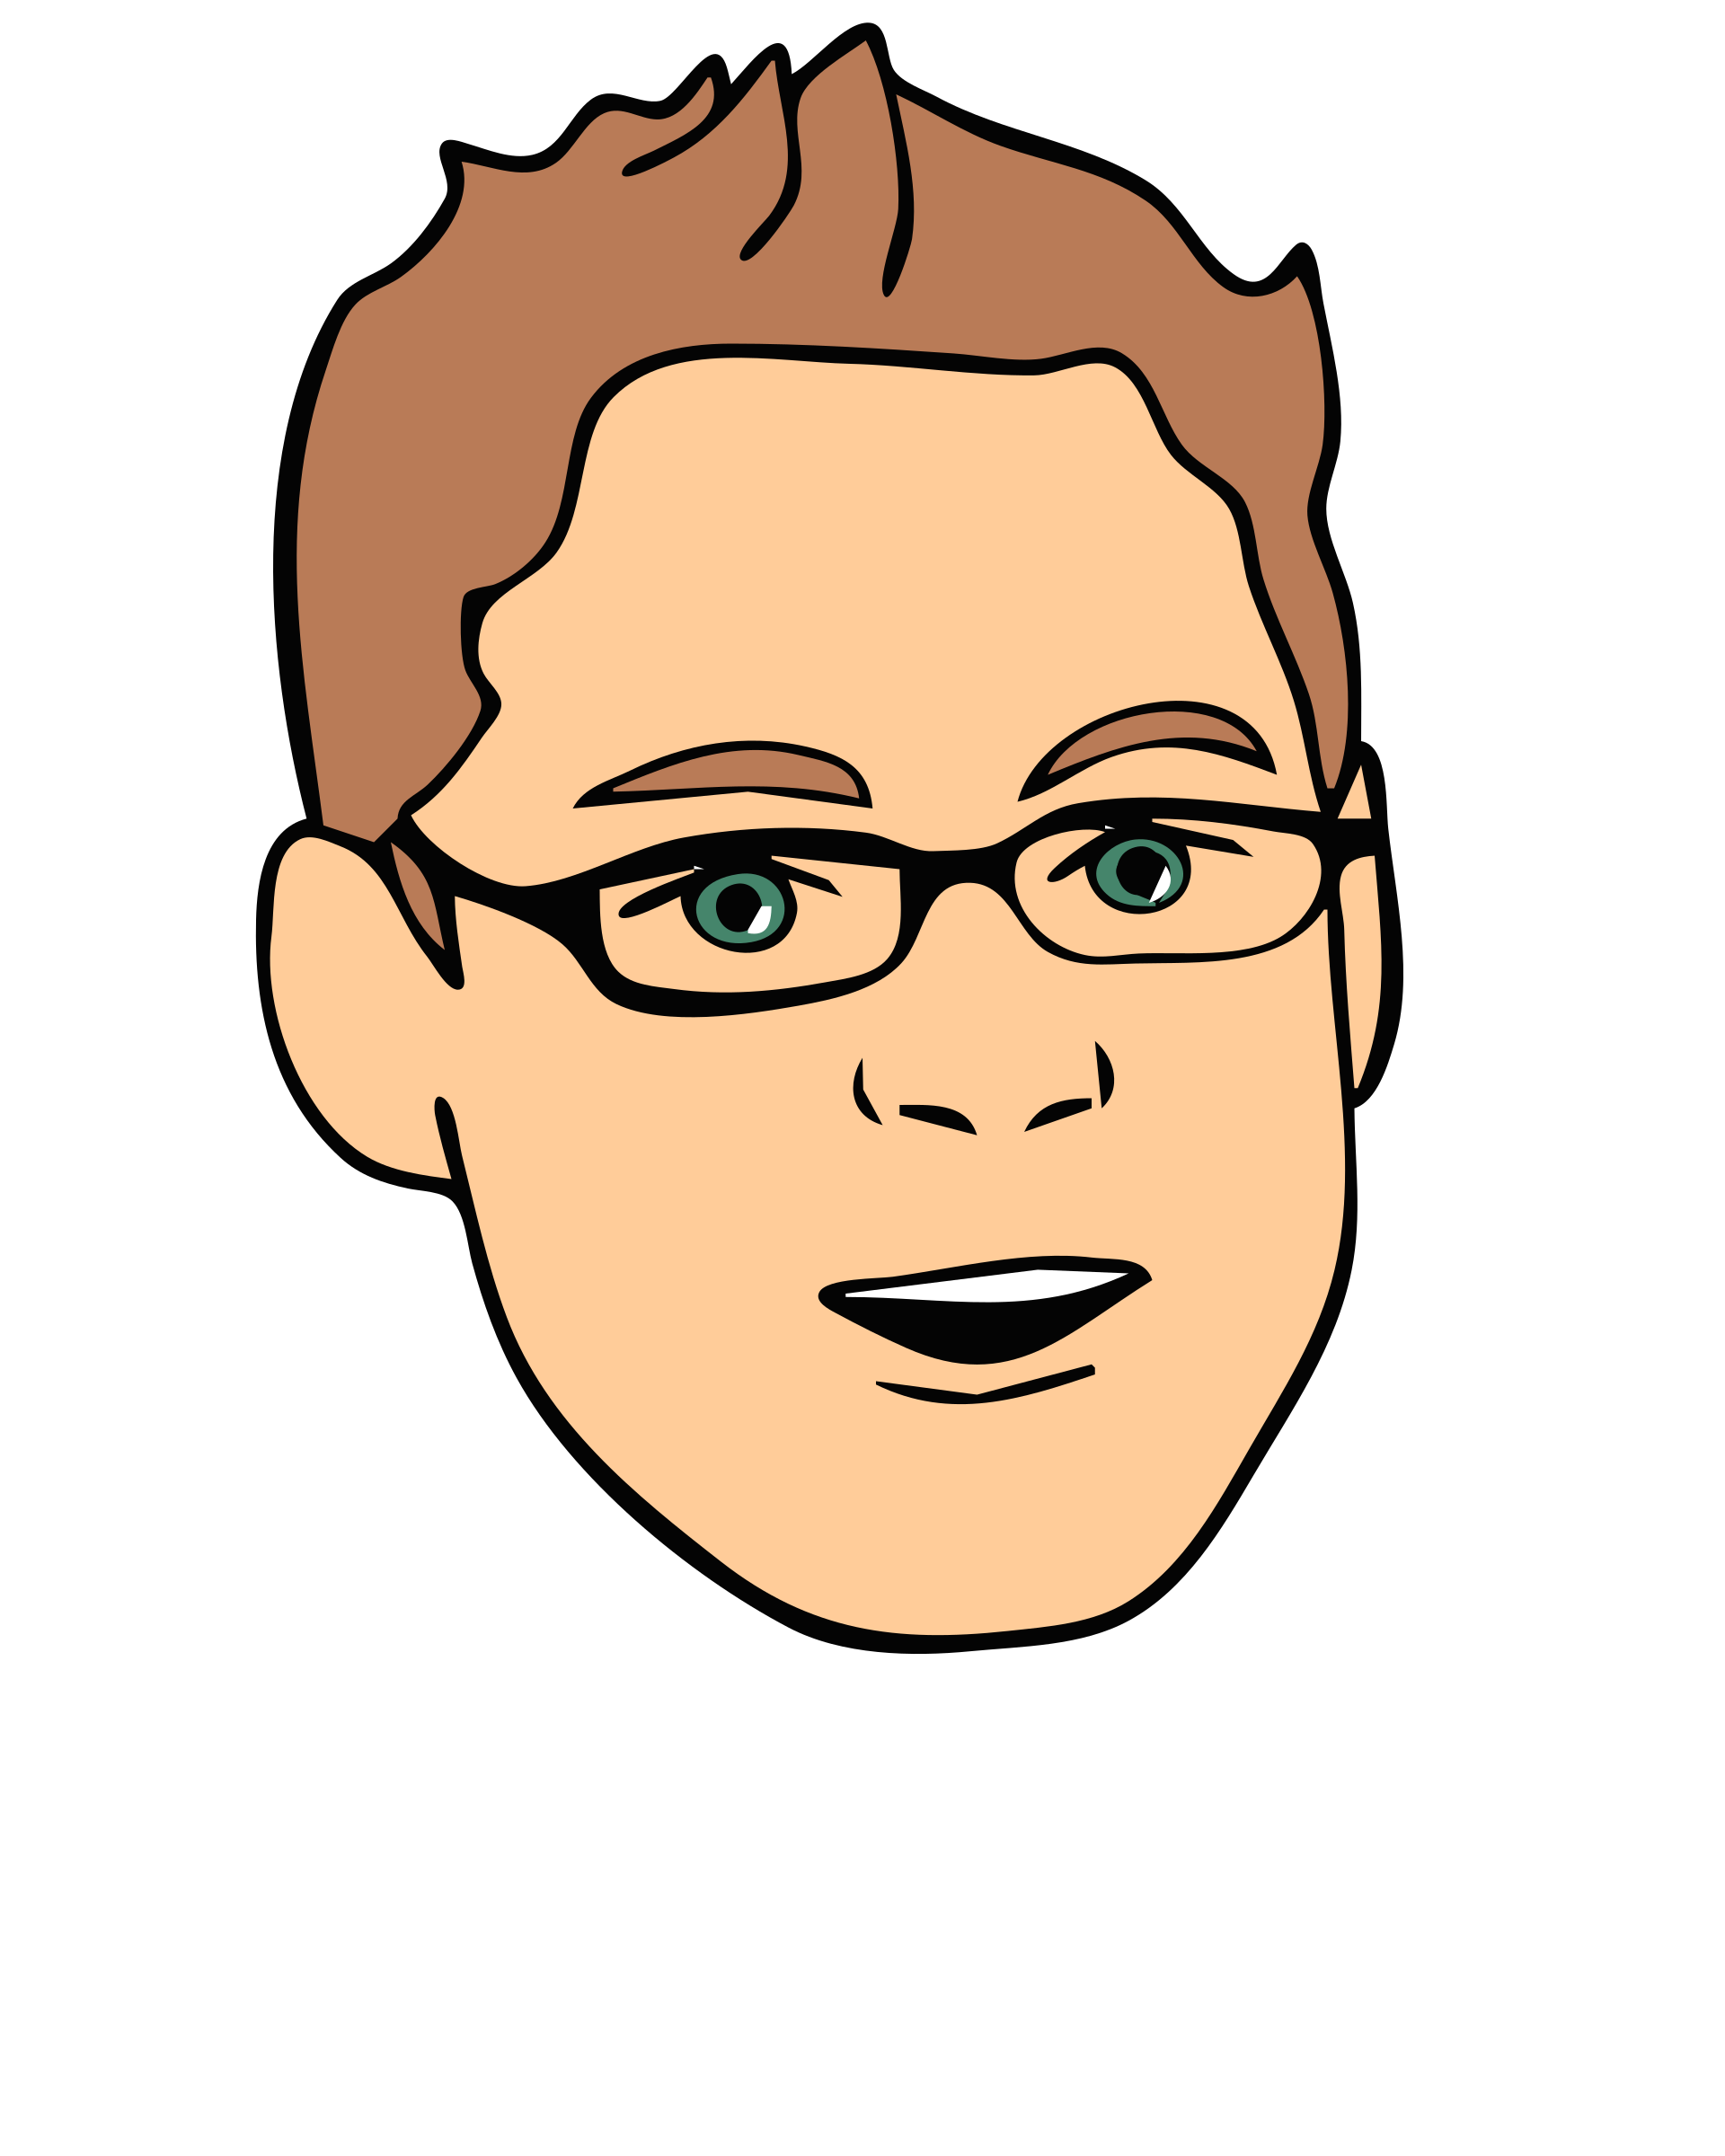 Clipart - Face, Avatar, Man, Male, Glasses 2